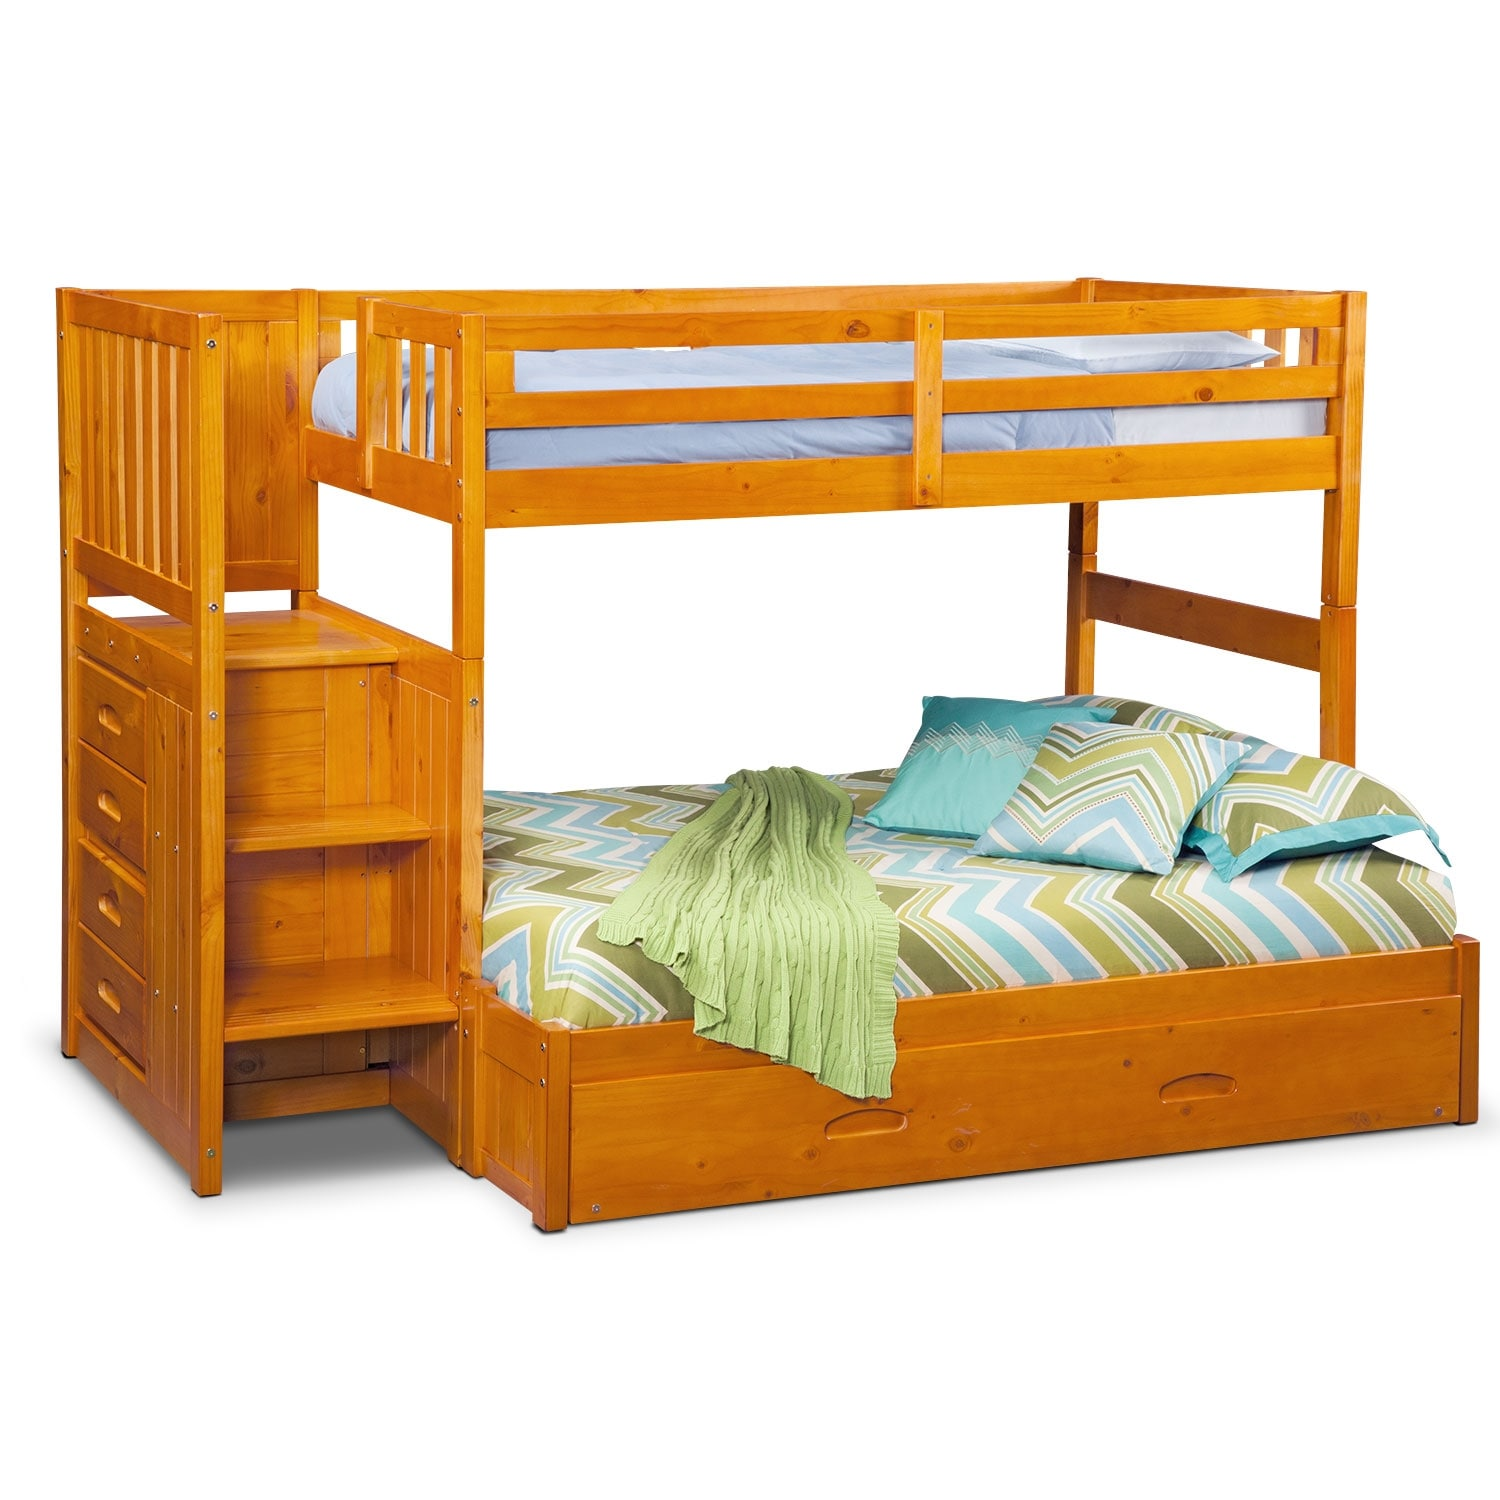 Kids Furniture - Ranger Twin over Full Bunk Bed with Storage Stairs & Trundle - Pine